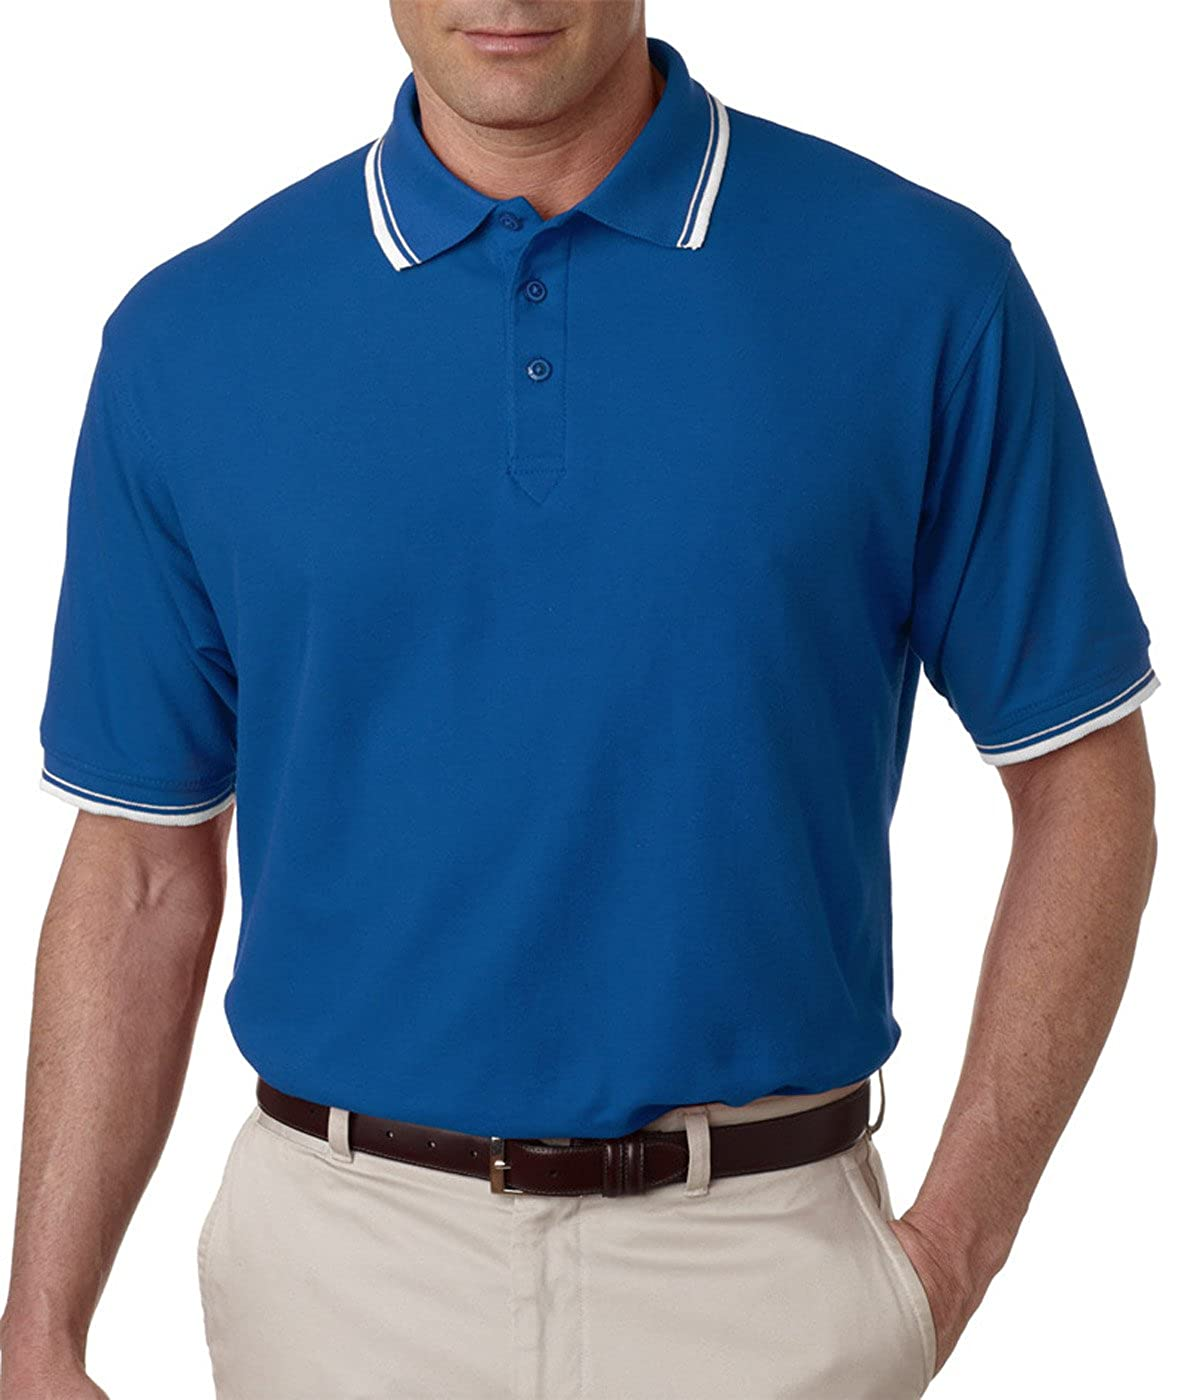 UltraClub Mens Blend Whisper Tipping Pique Polo Shirt